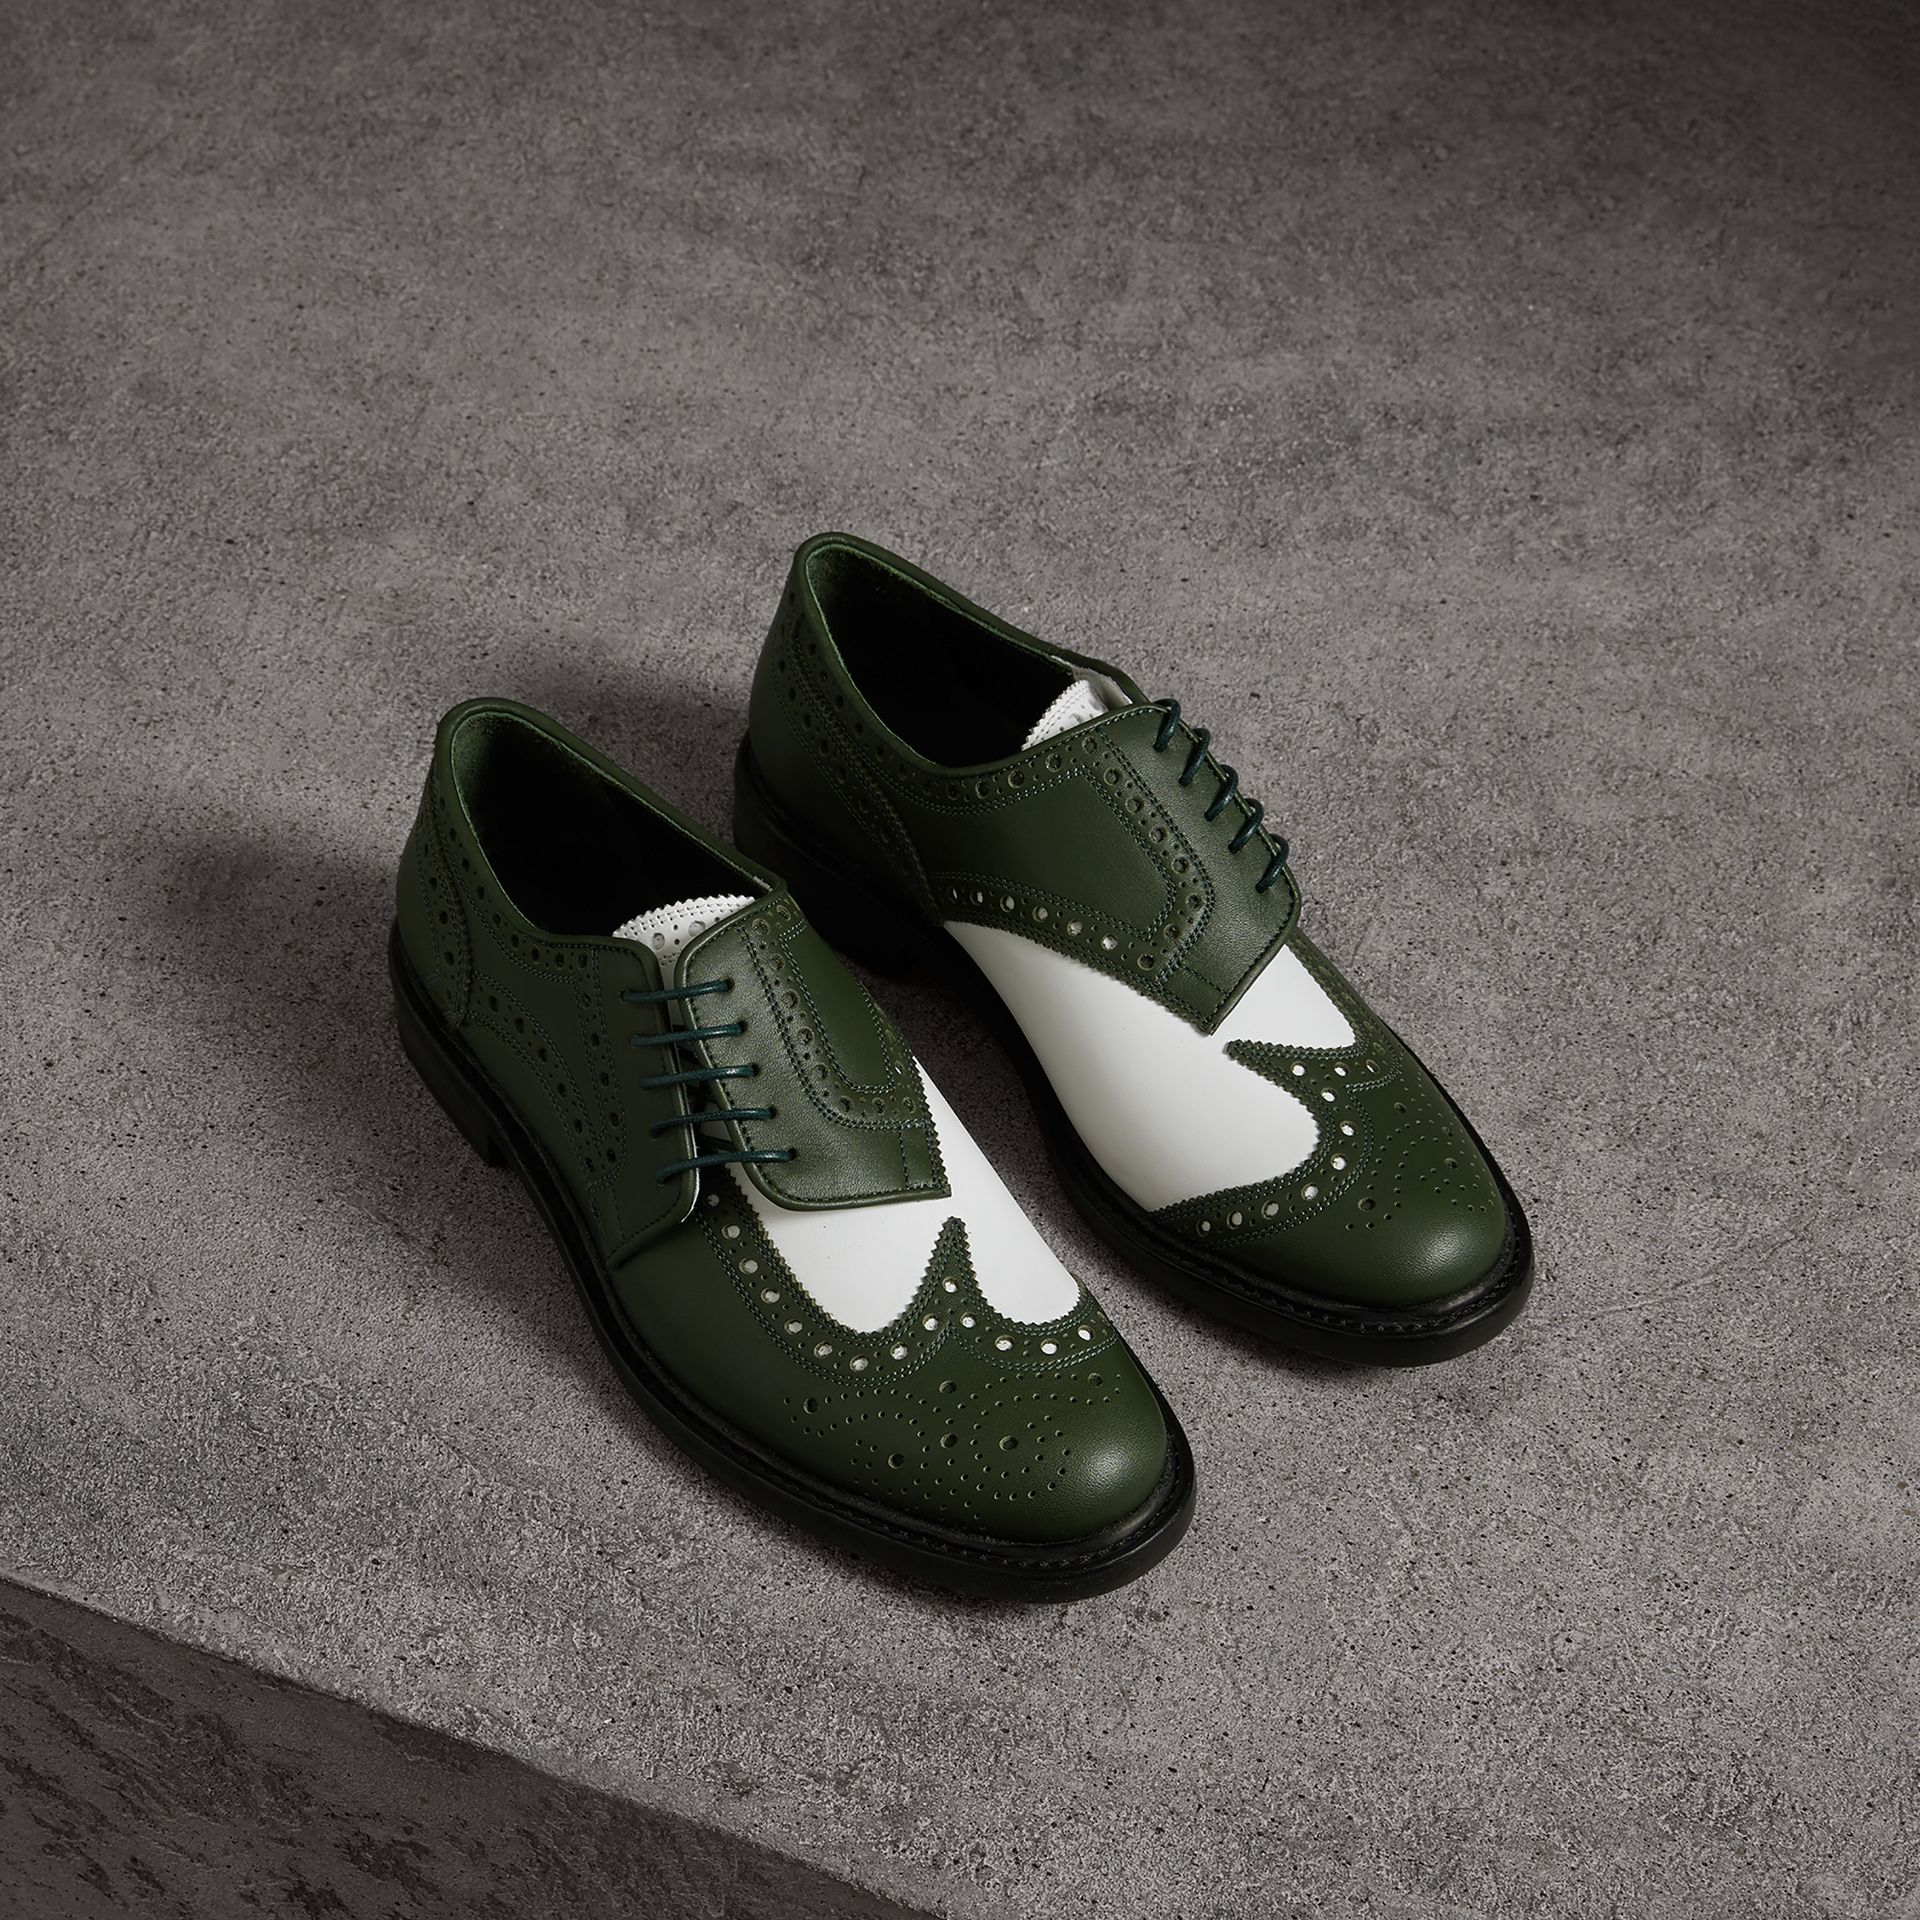 Two-tone Asymmetric Closure Leather Brogues in Dark Green - Women | Burberry Singapore - gallery image 0